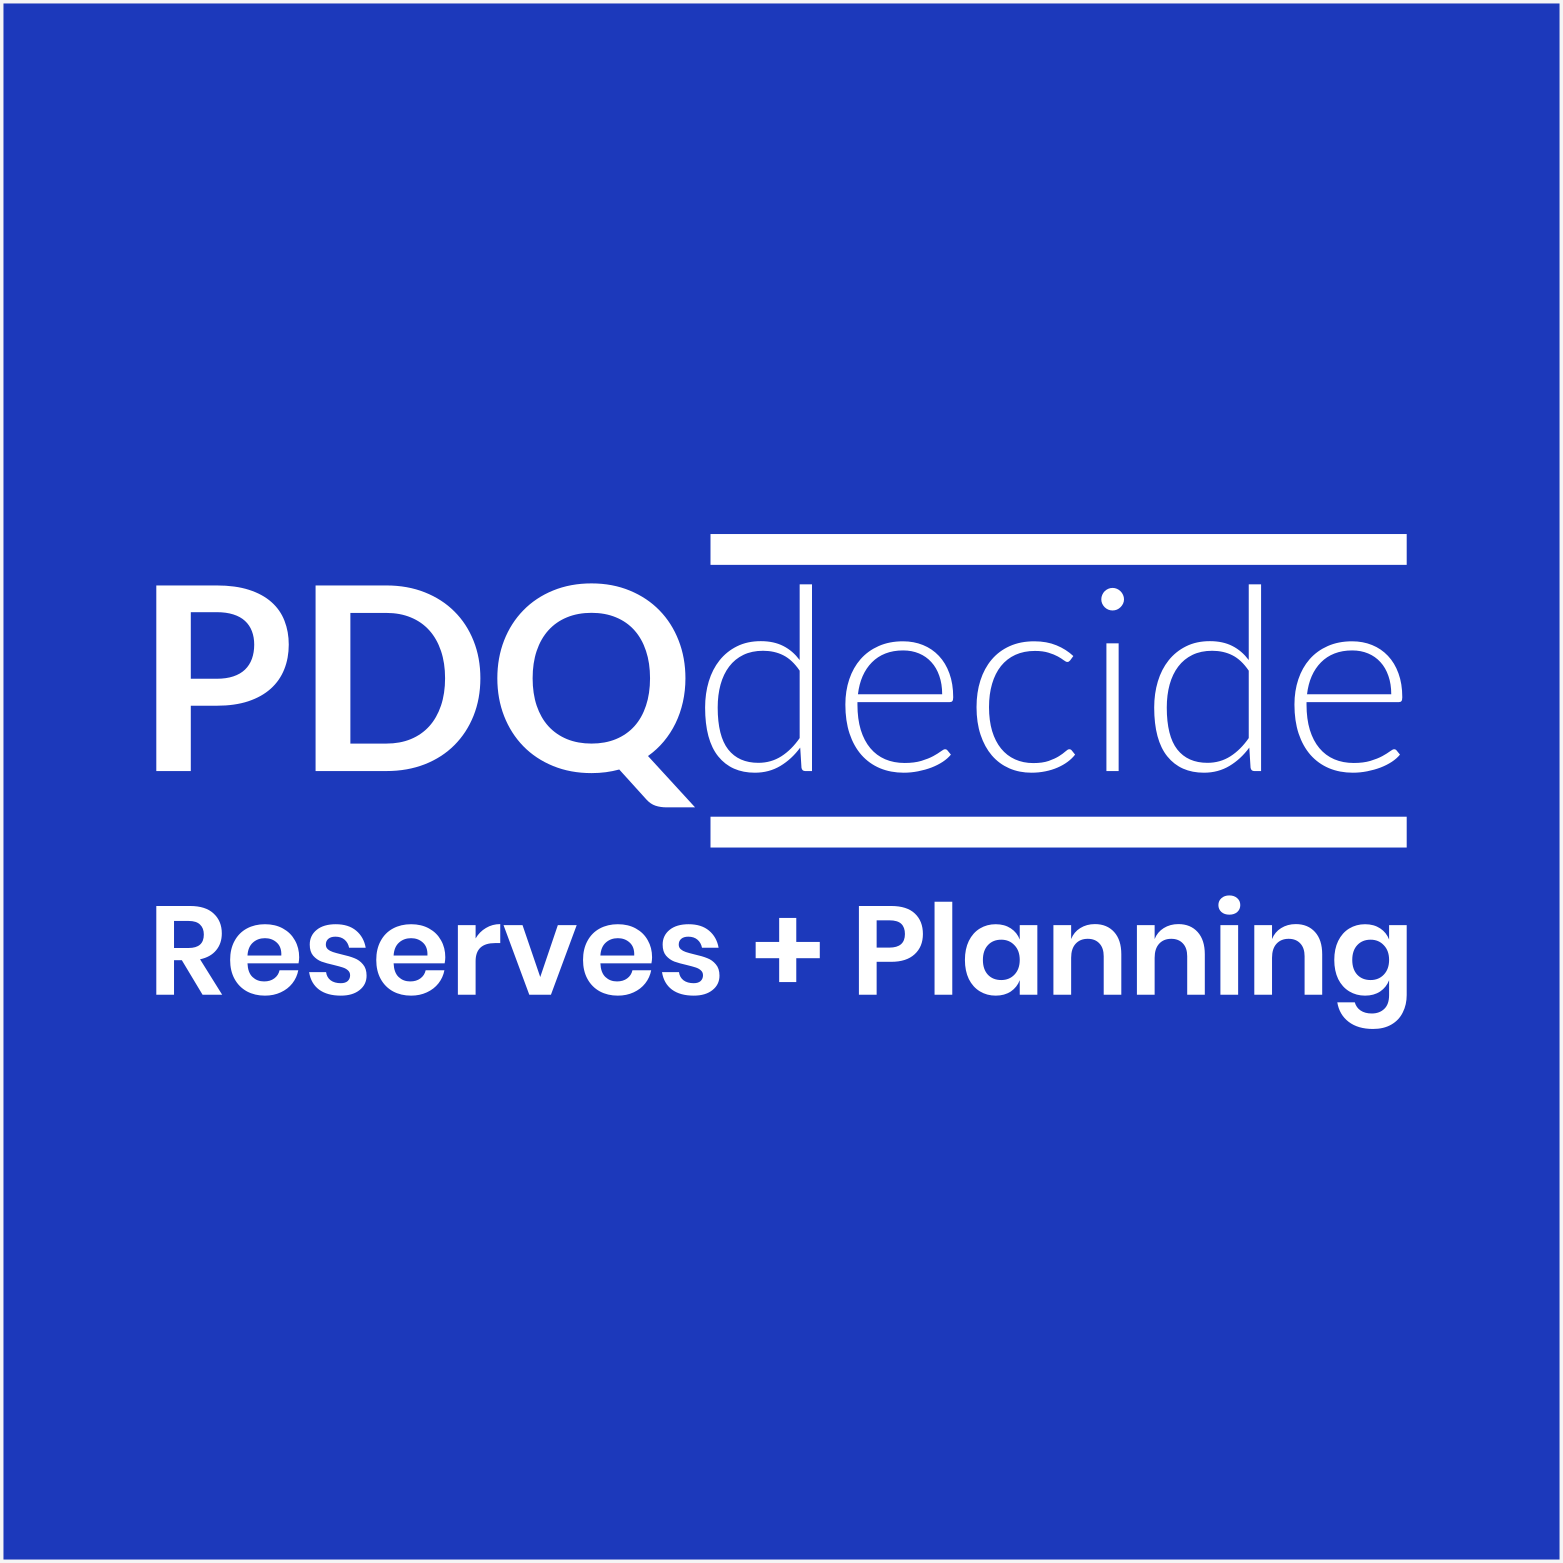 Announcing PDQdecide